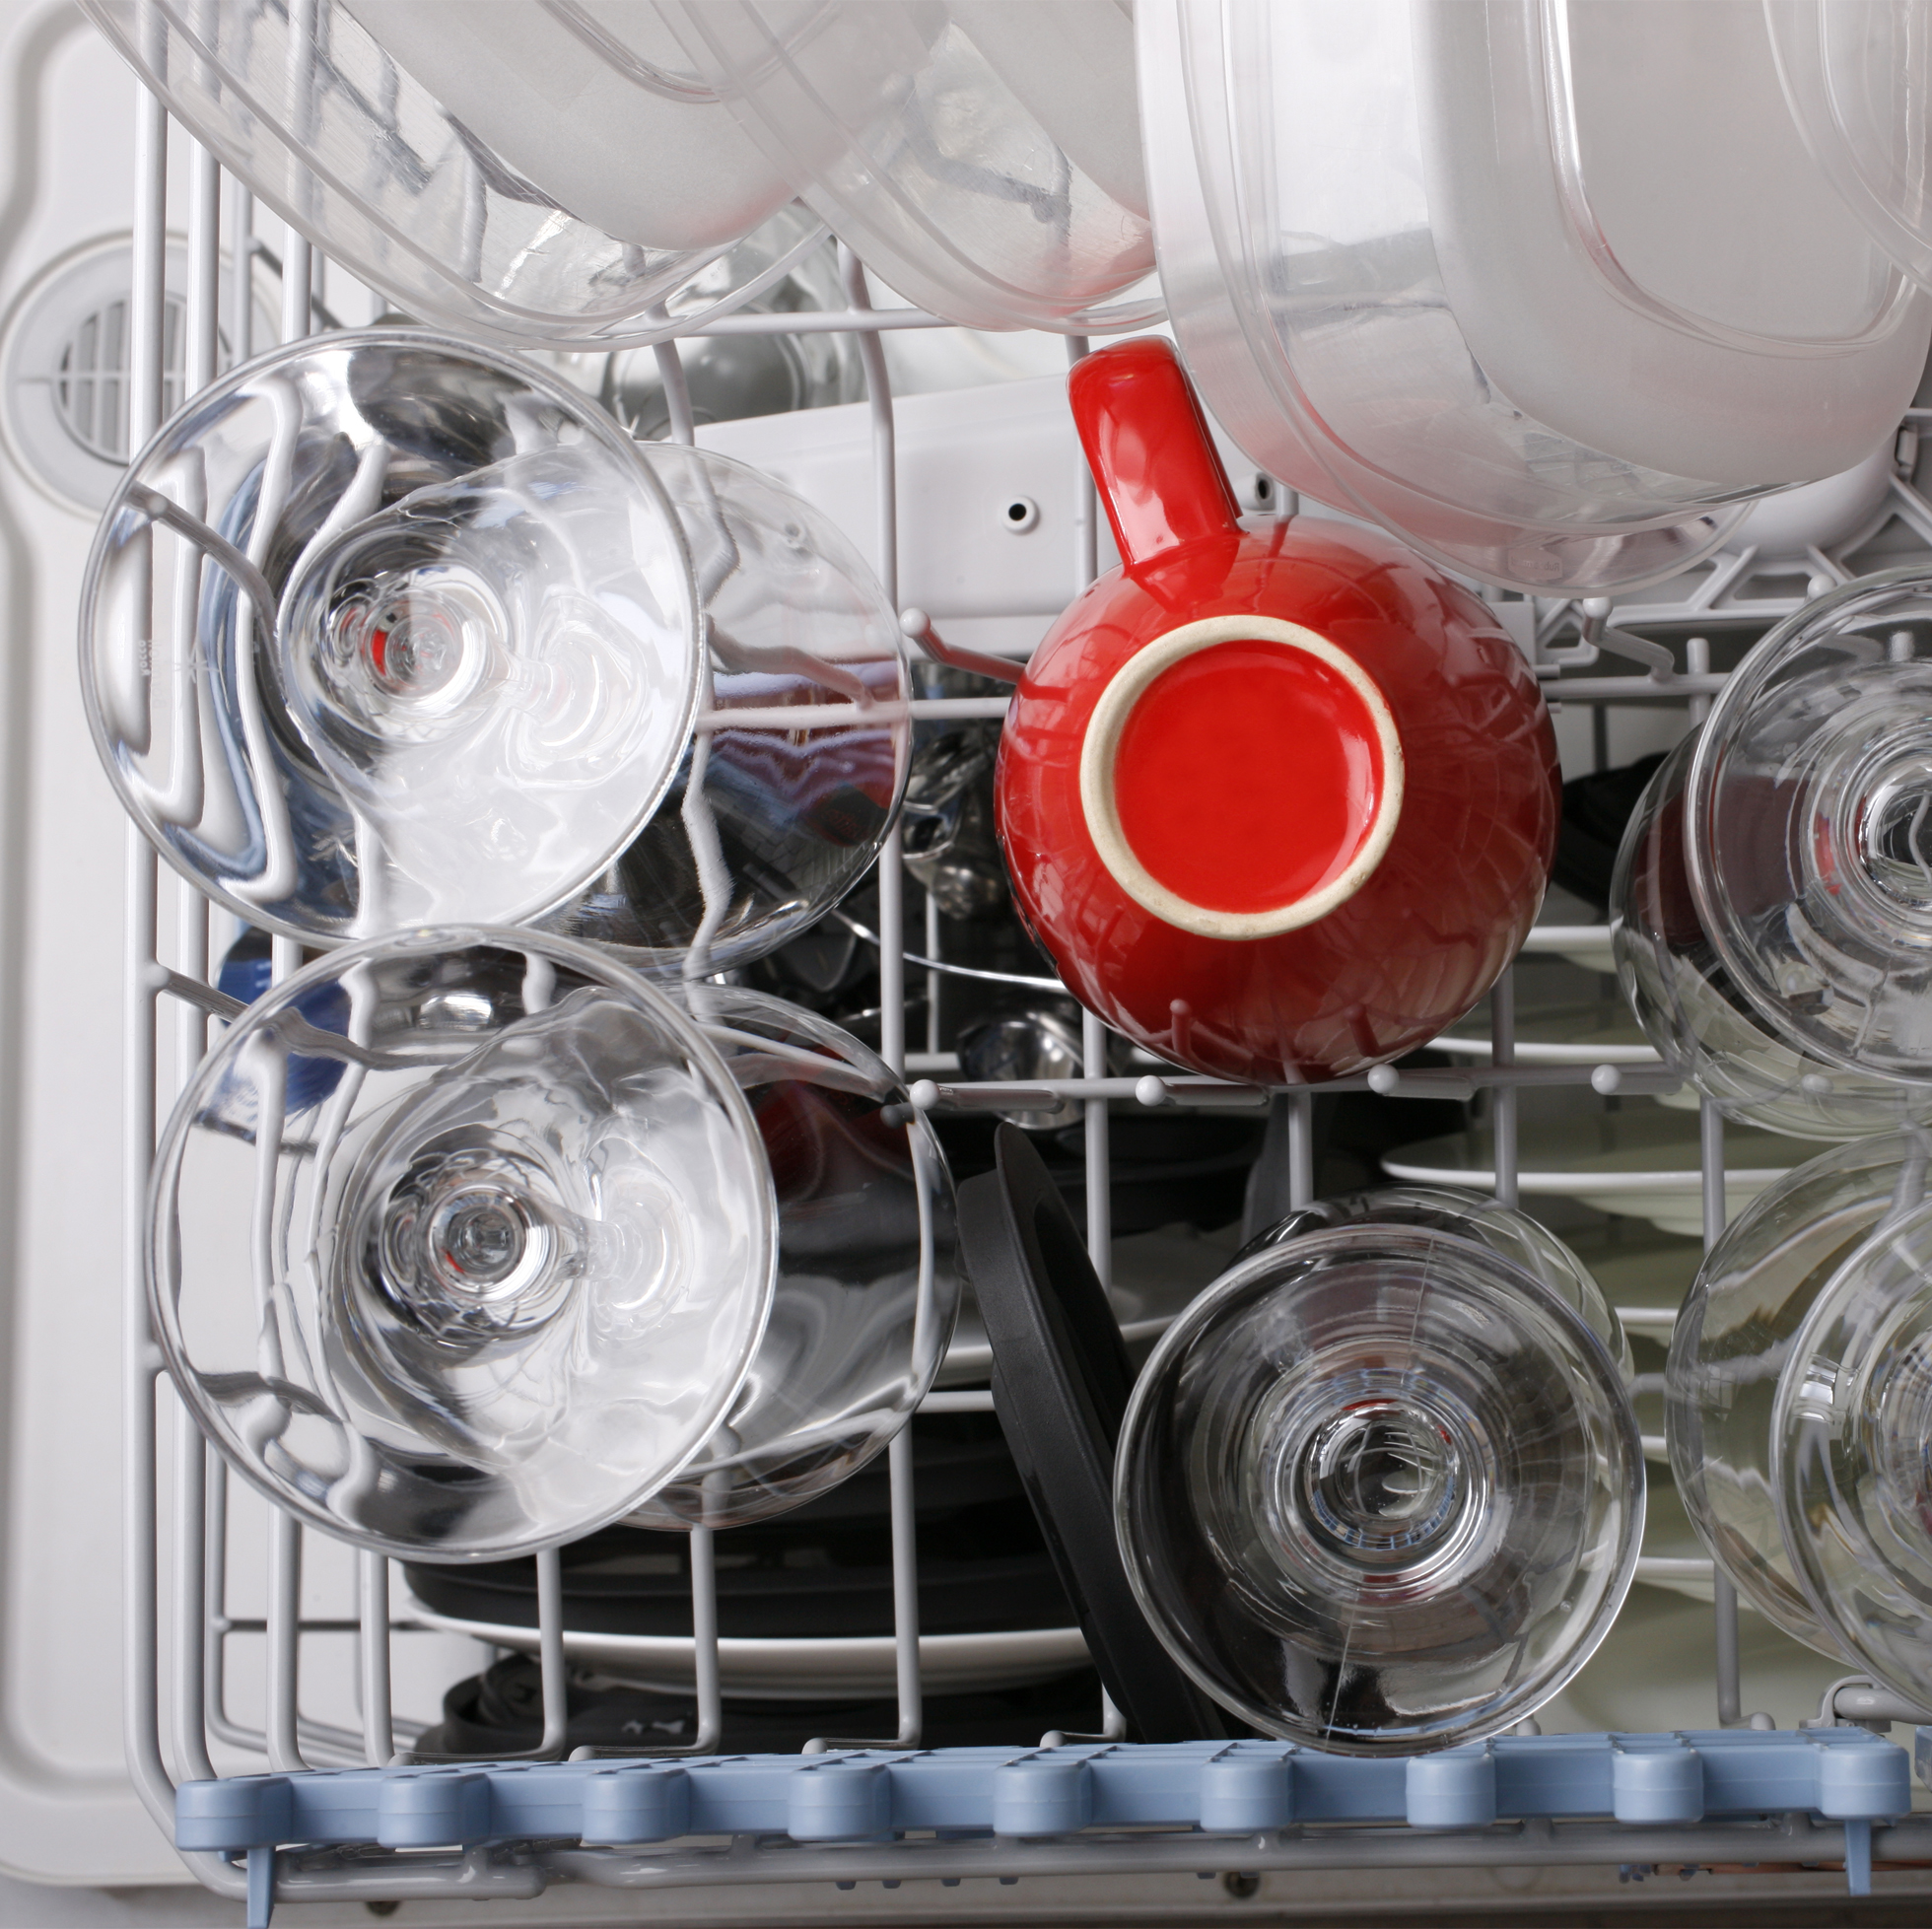 Brand new dishwasher in a home kitchen